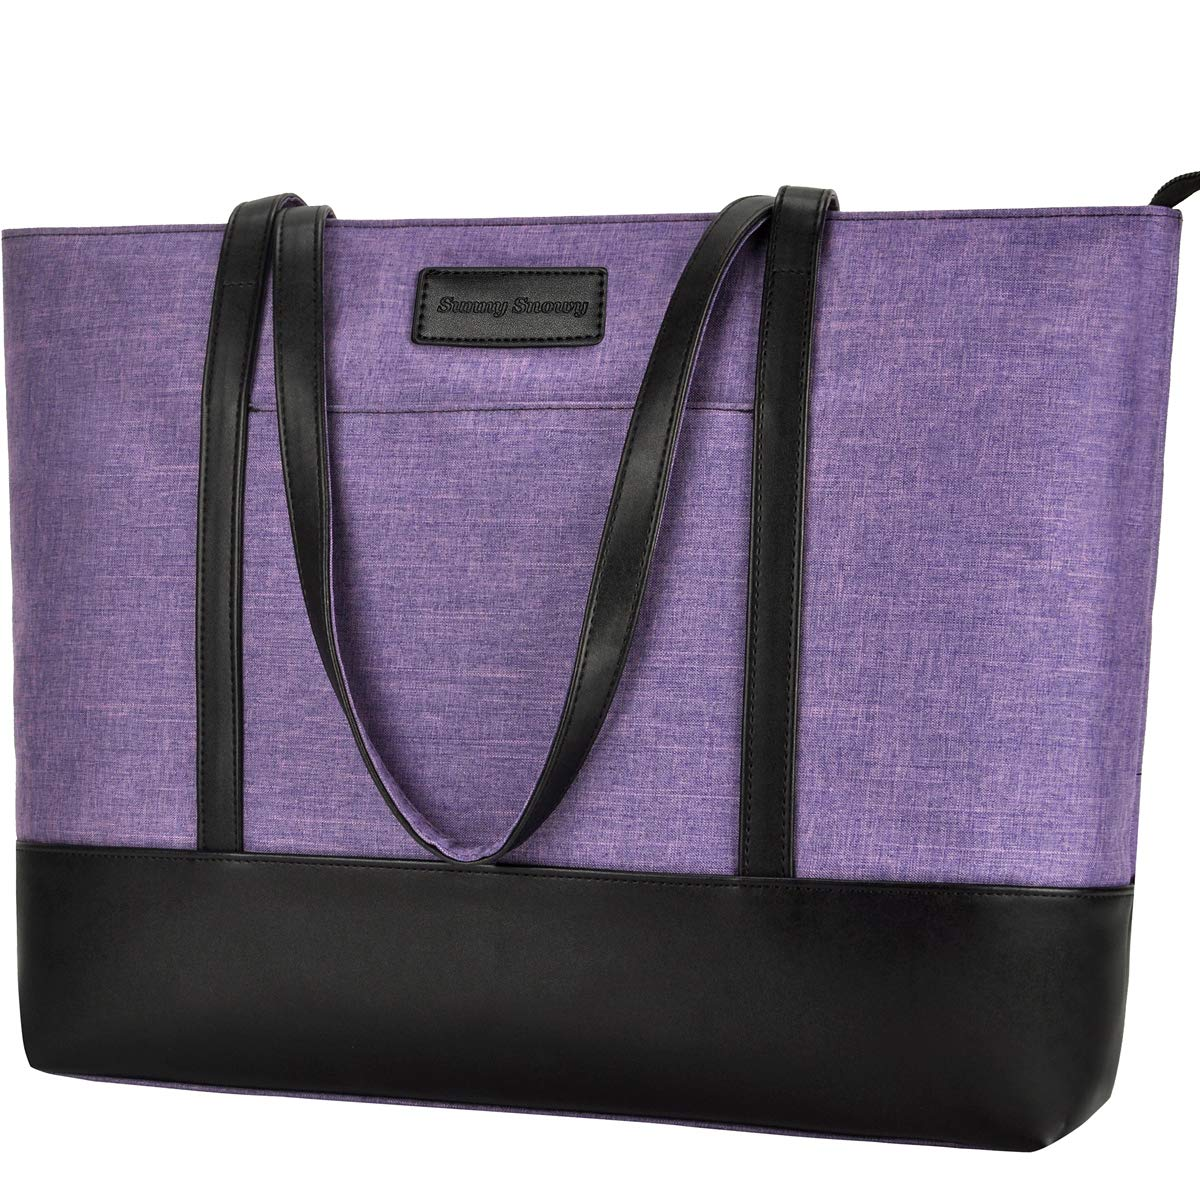 Laptop Tote Bag,Fits 15.6 Inch Laptop,Womens Lightweight Water Resistant Nylon Tote Bag Shoulder Bag Ideal for Her(C-Purple)